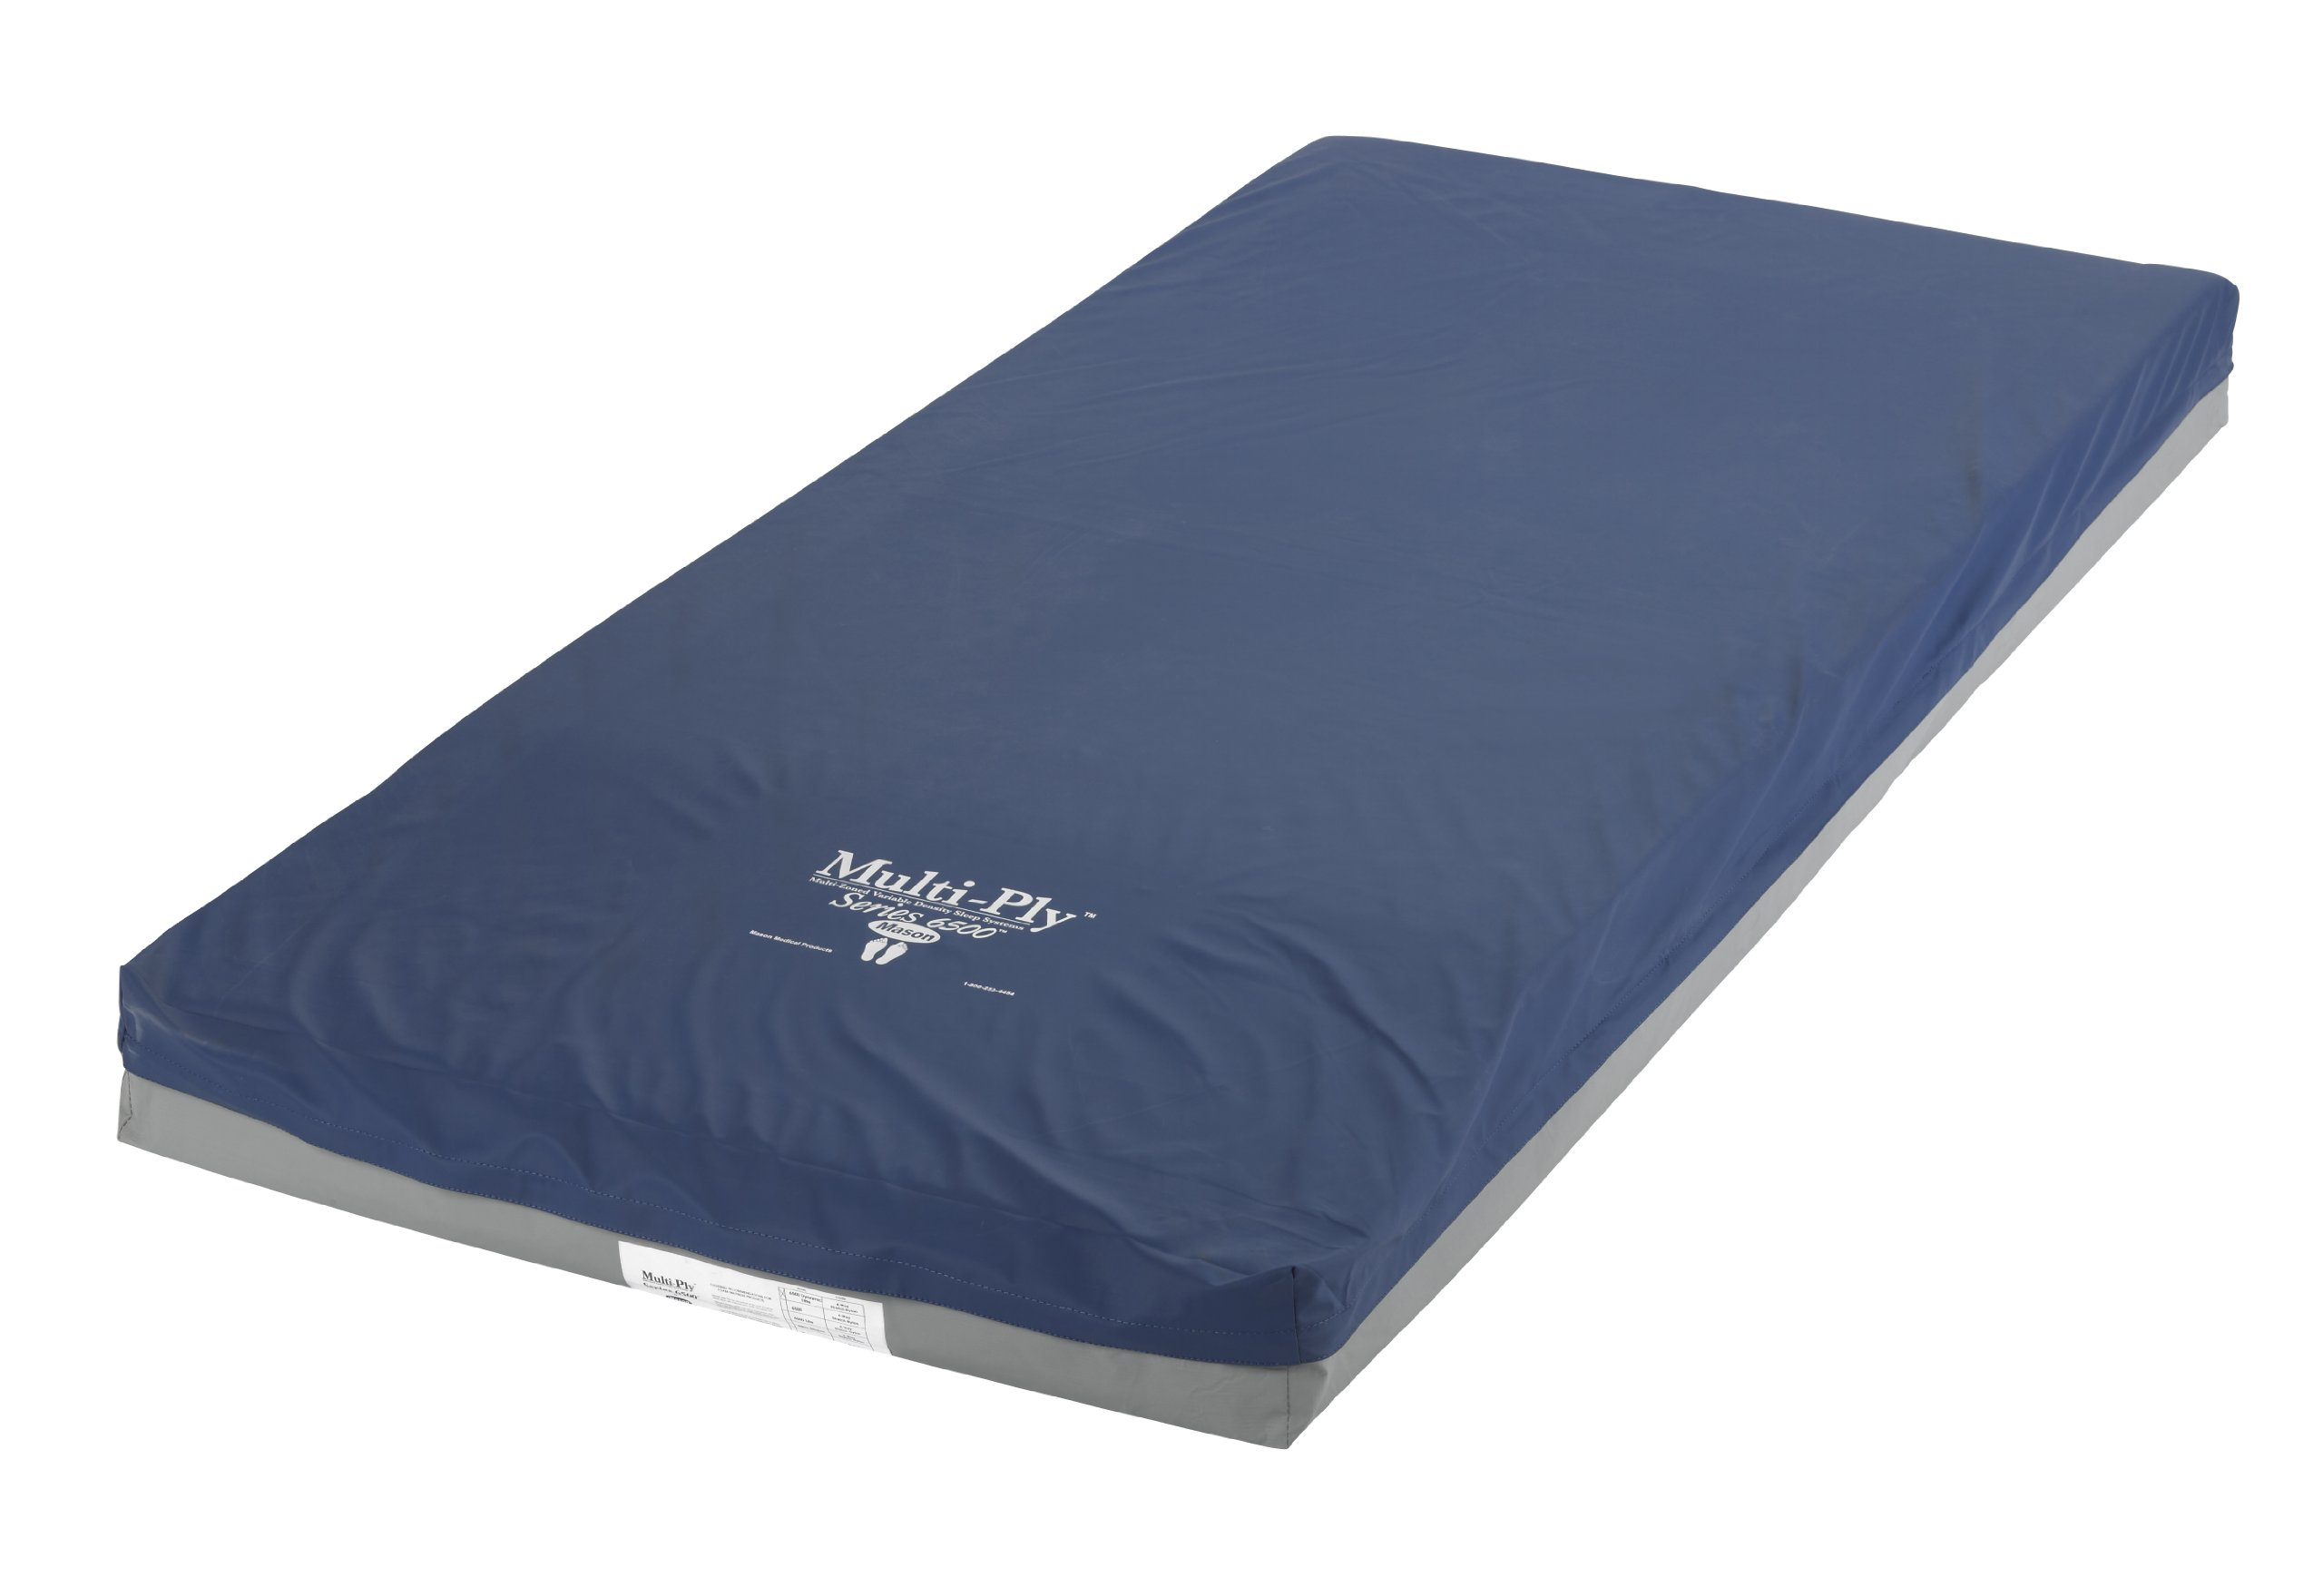 Drive Multi-Ply Dynamic Elite Foam Pressure Redistribution Mattress, 80'', Model - 6500-DE-2-FB